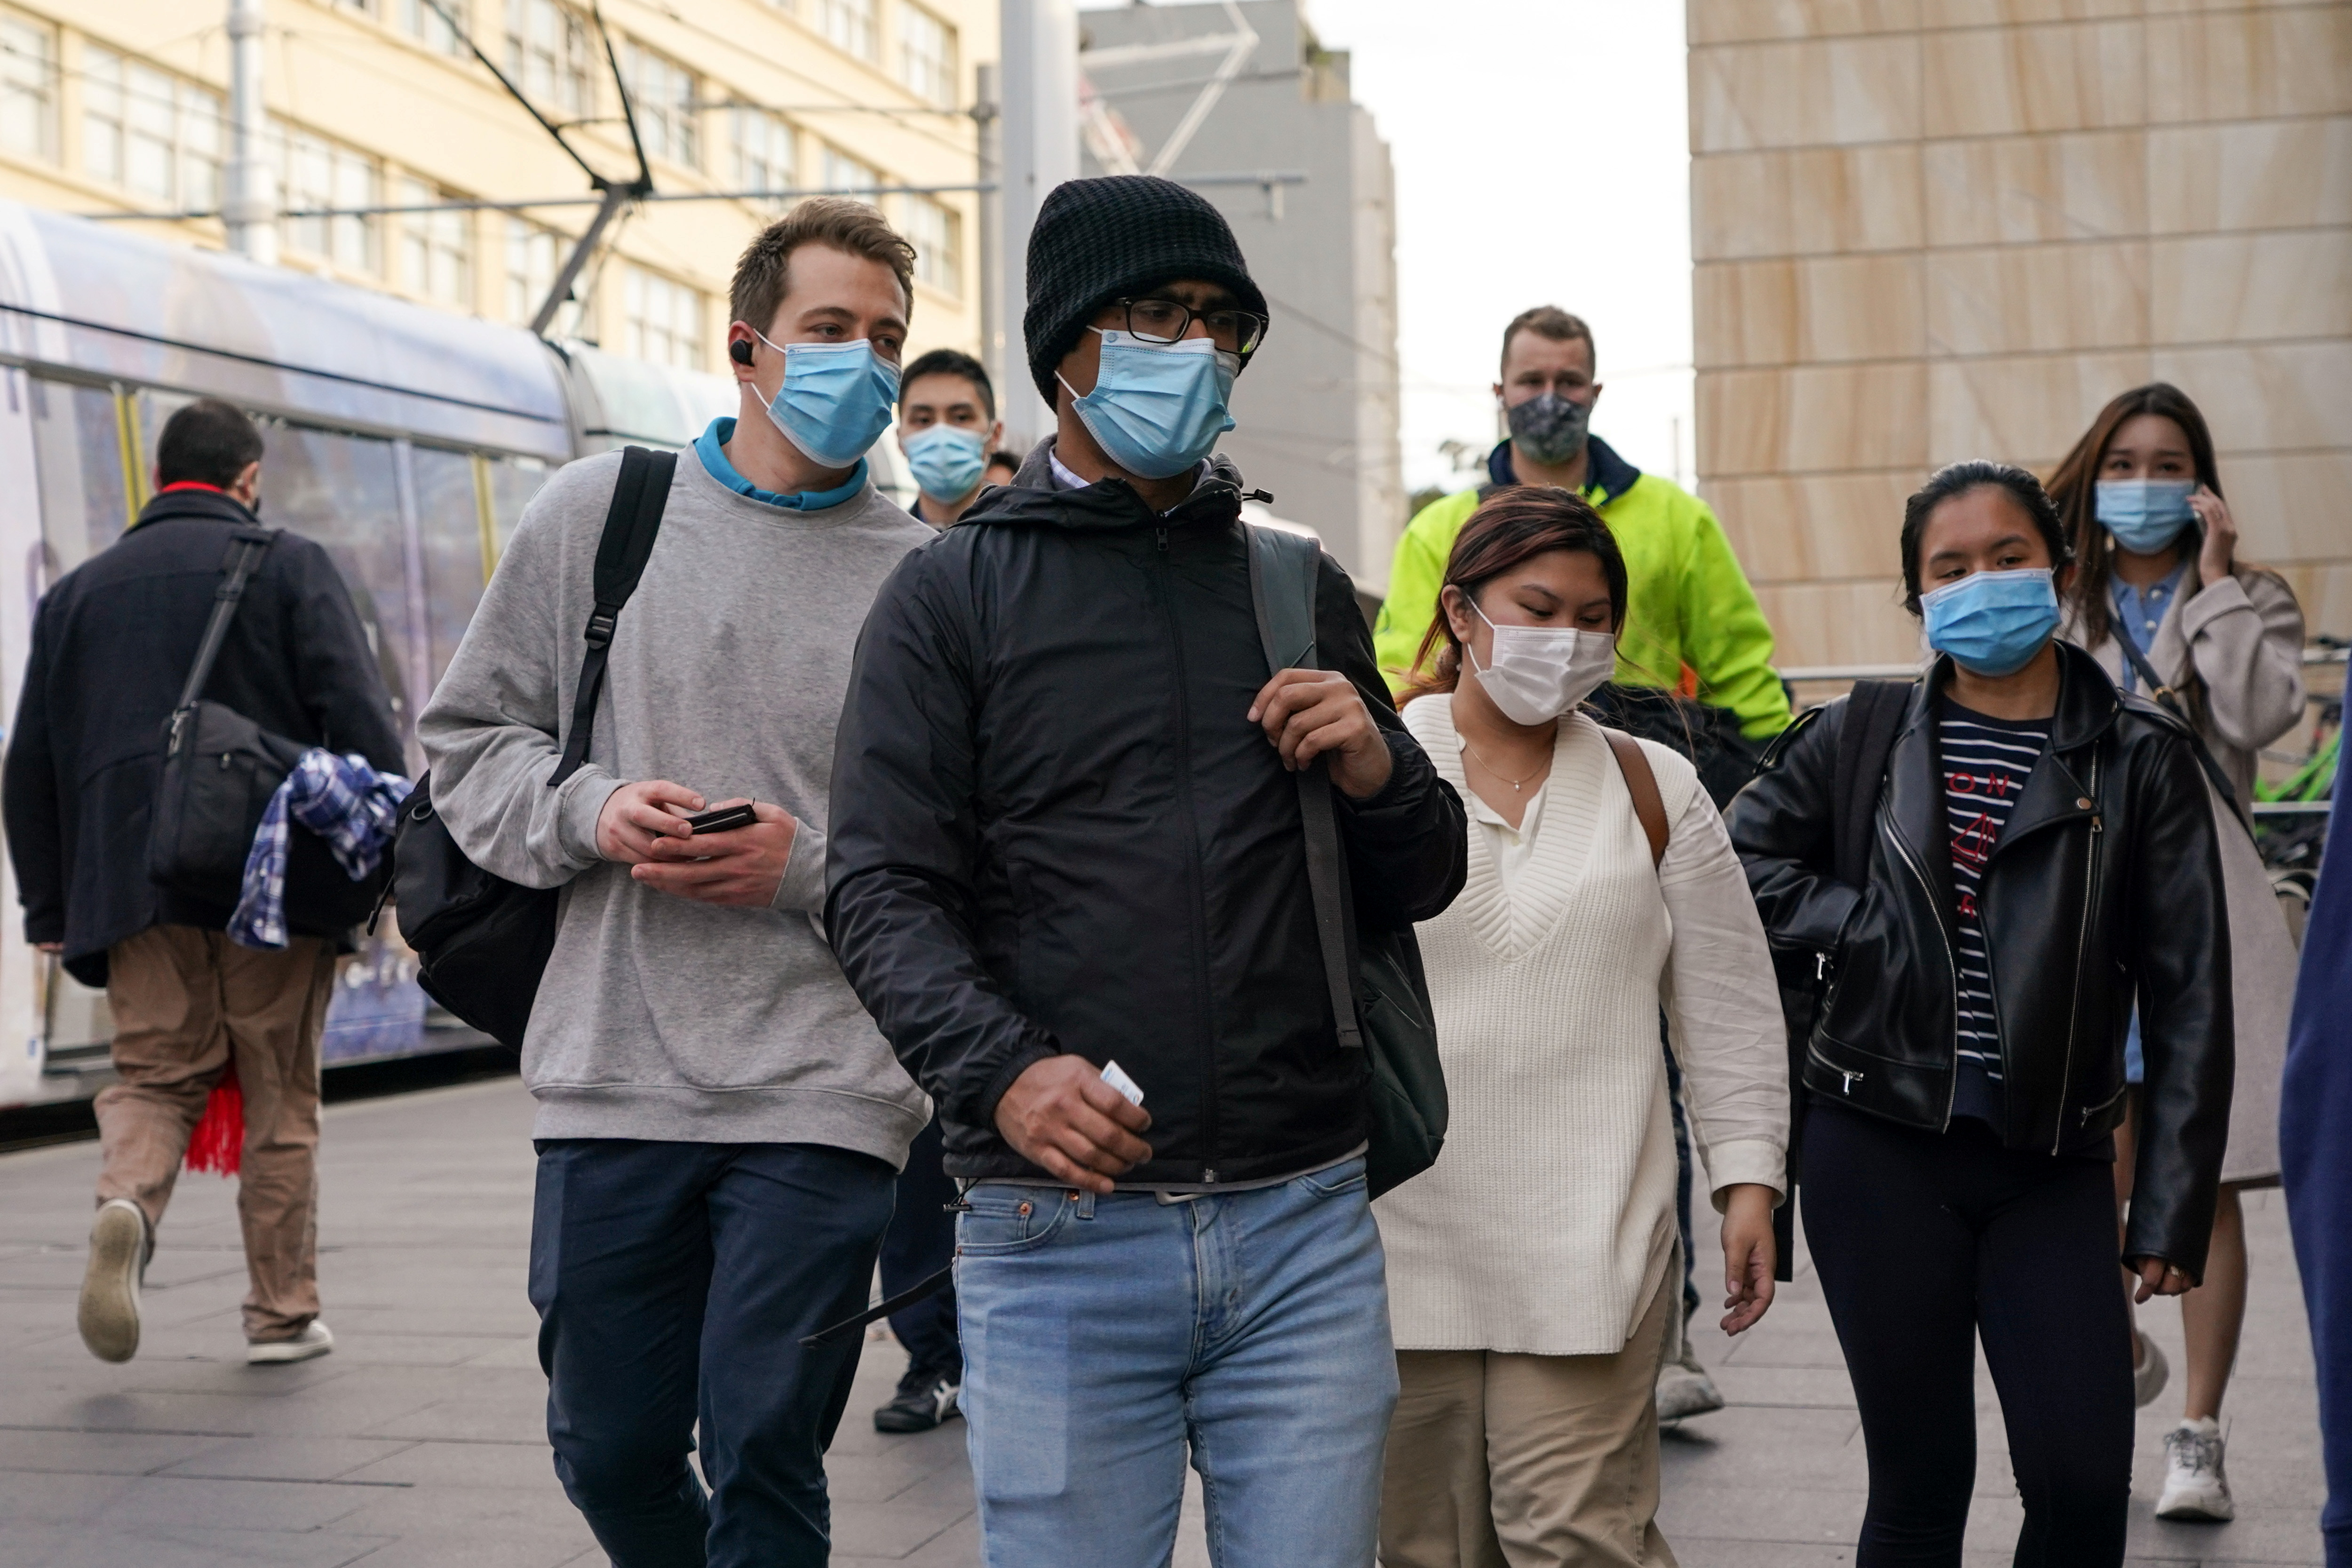 Commuters wear protective face masks as they enter Central Station following the implementation of new public health regulations from the state of New South Wales, as the city grapples with an outbreak of the coronavirus disease (COVID-19) in Sydney, Australia, June 23, 2021.  REUTERS/Loren Elliott